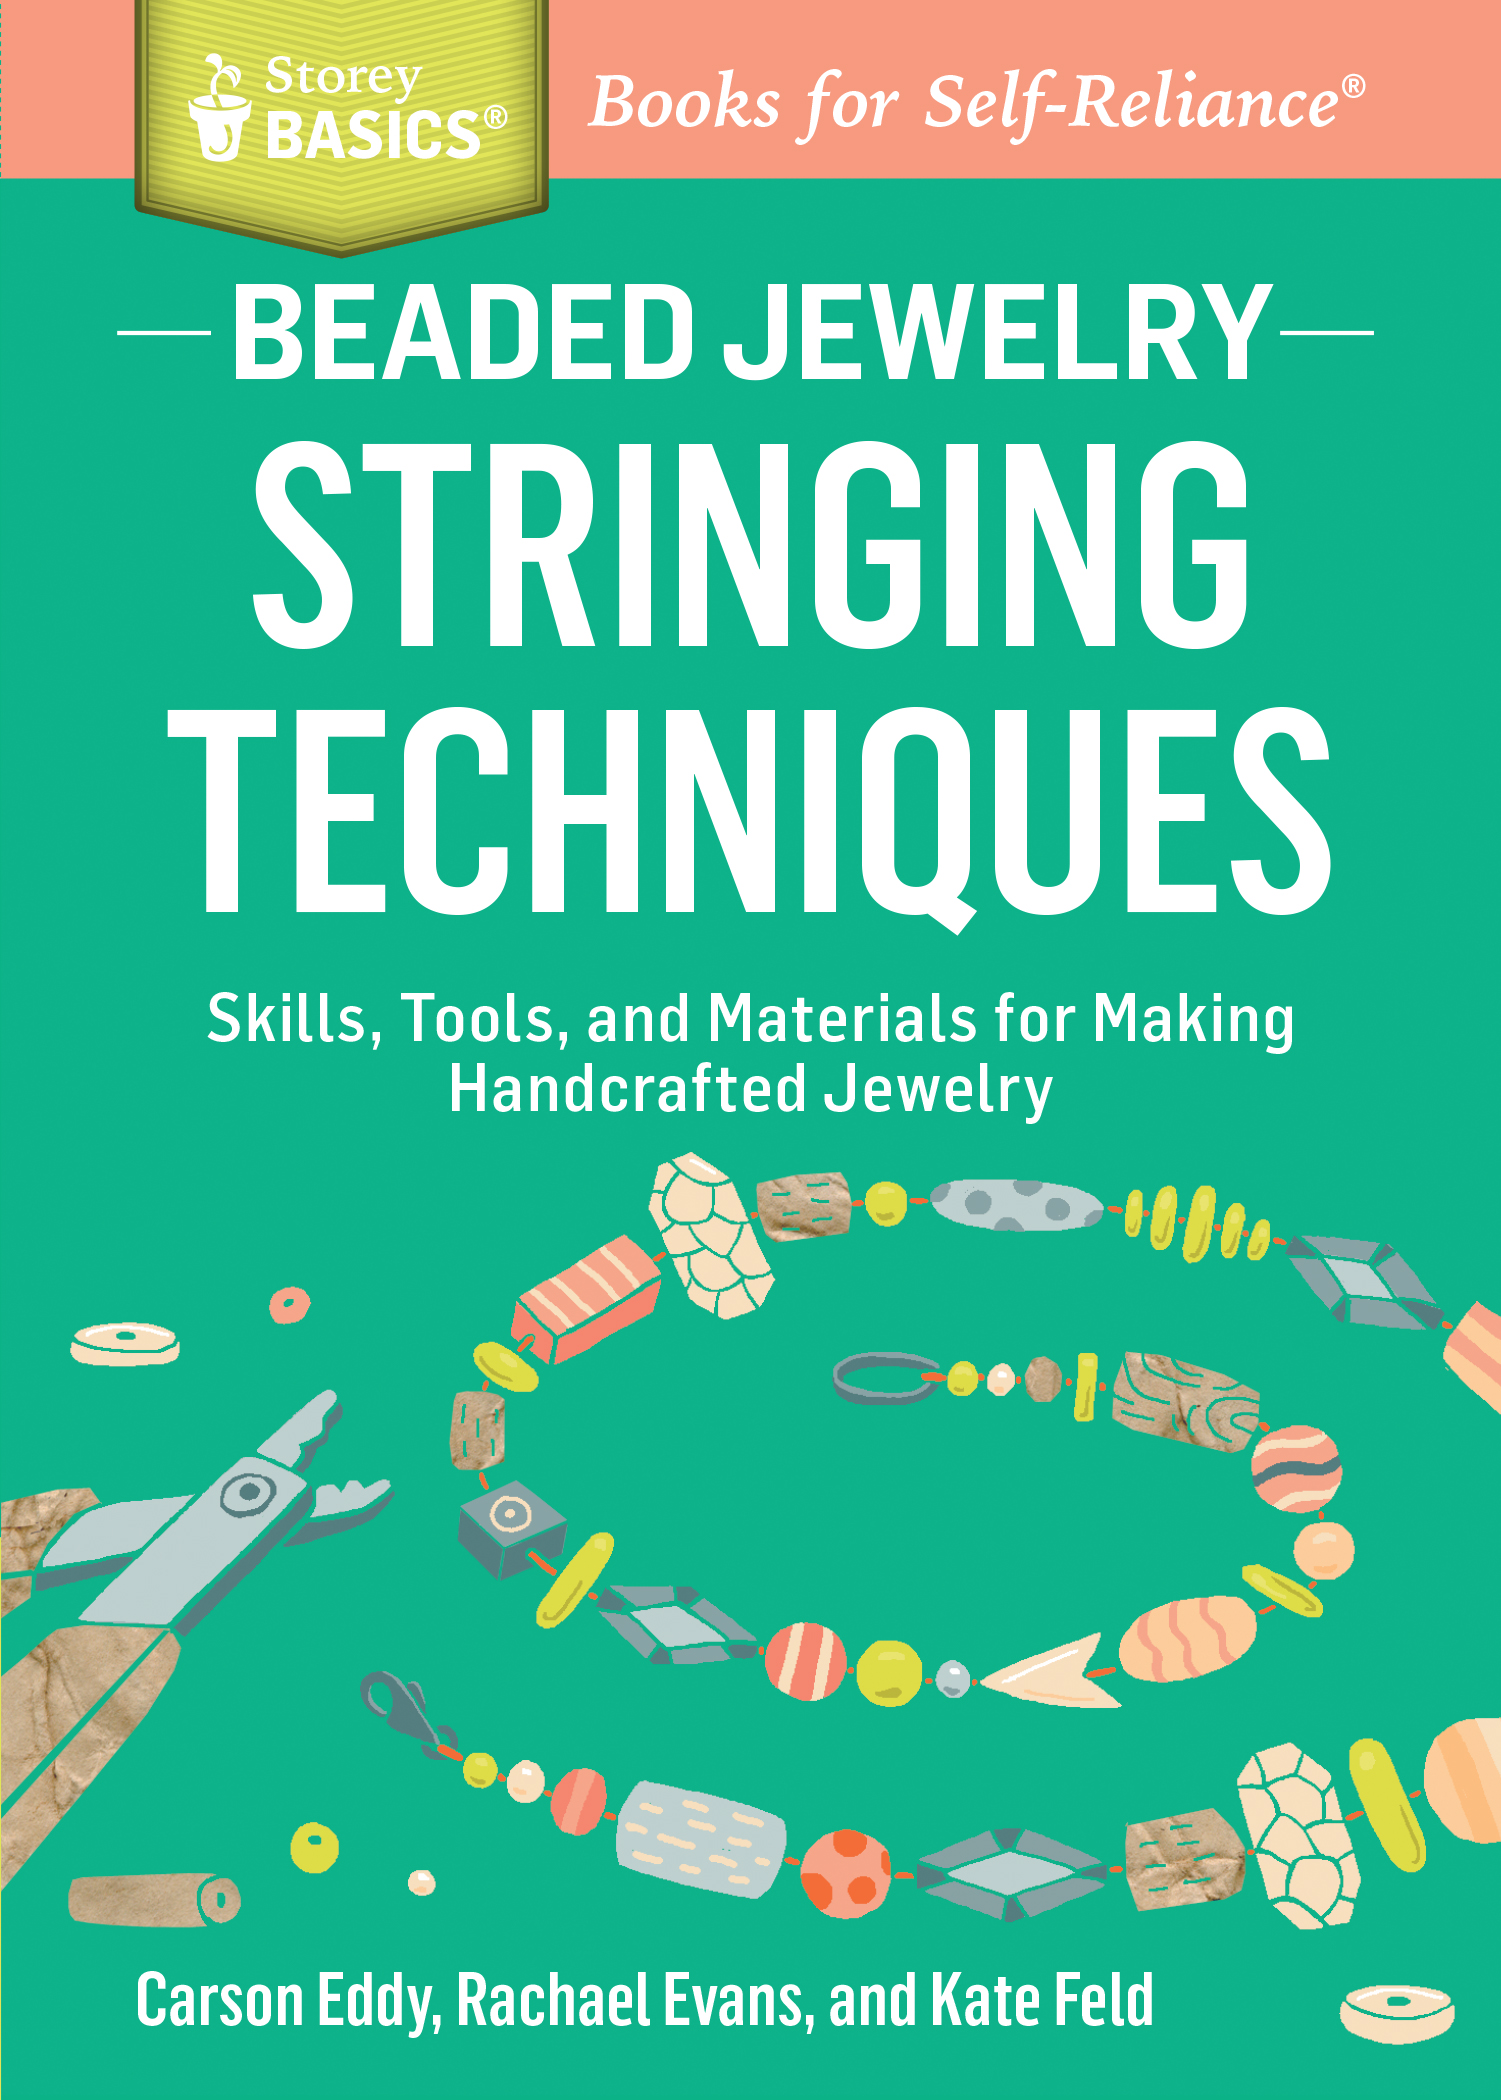 Beaded Jewelry: Stringing Techniques Skills, Tools, and Materials for Making Handcrafted Jewelry. A Storey BASICS® Title - Carson Eddy